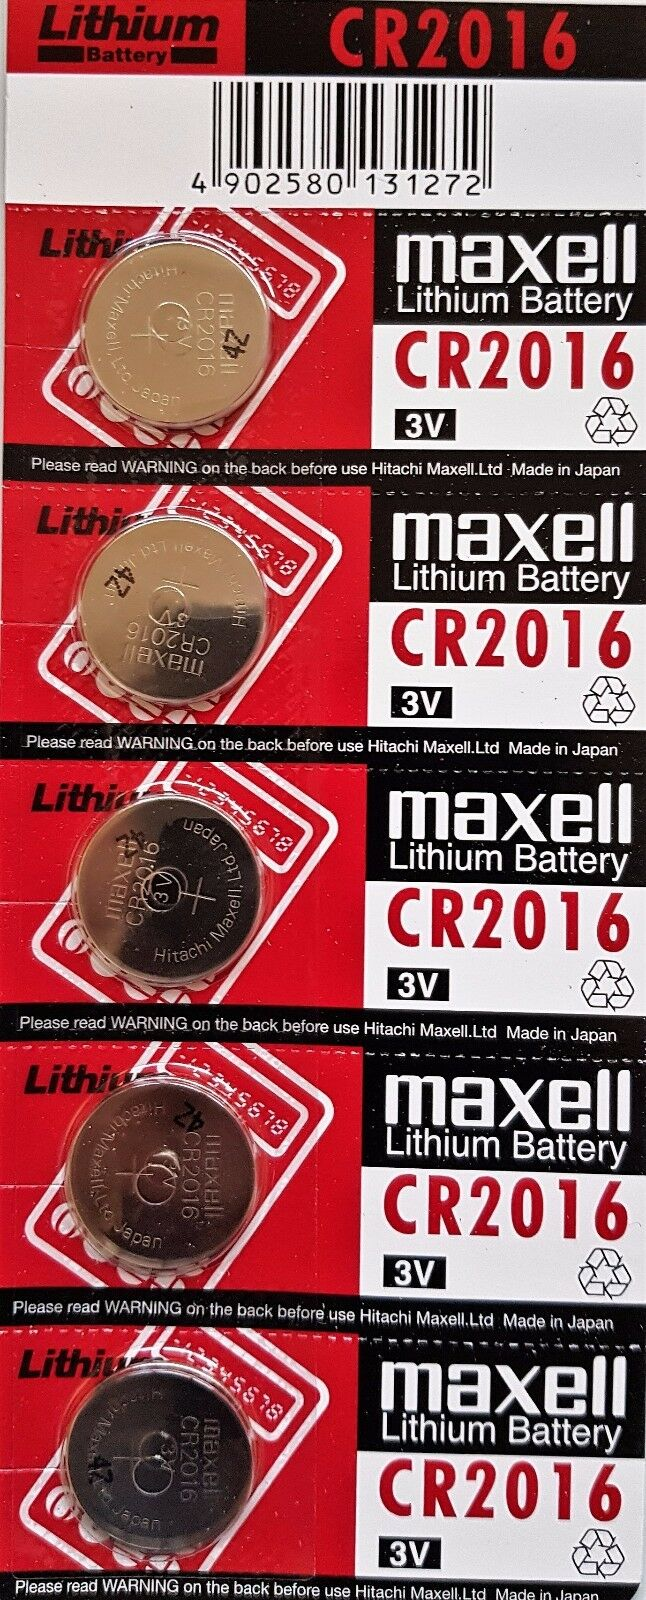 Maxell 5 x Genuine CR2016 3v Lithium Button/Coin Cells Batteries Free Postage.